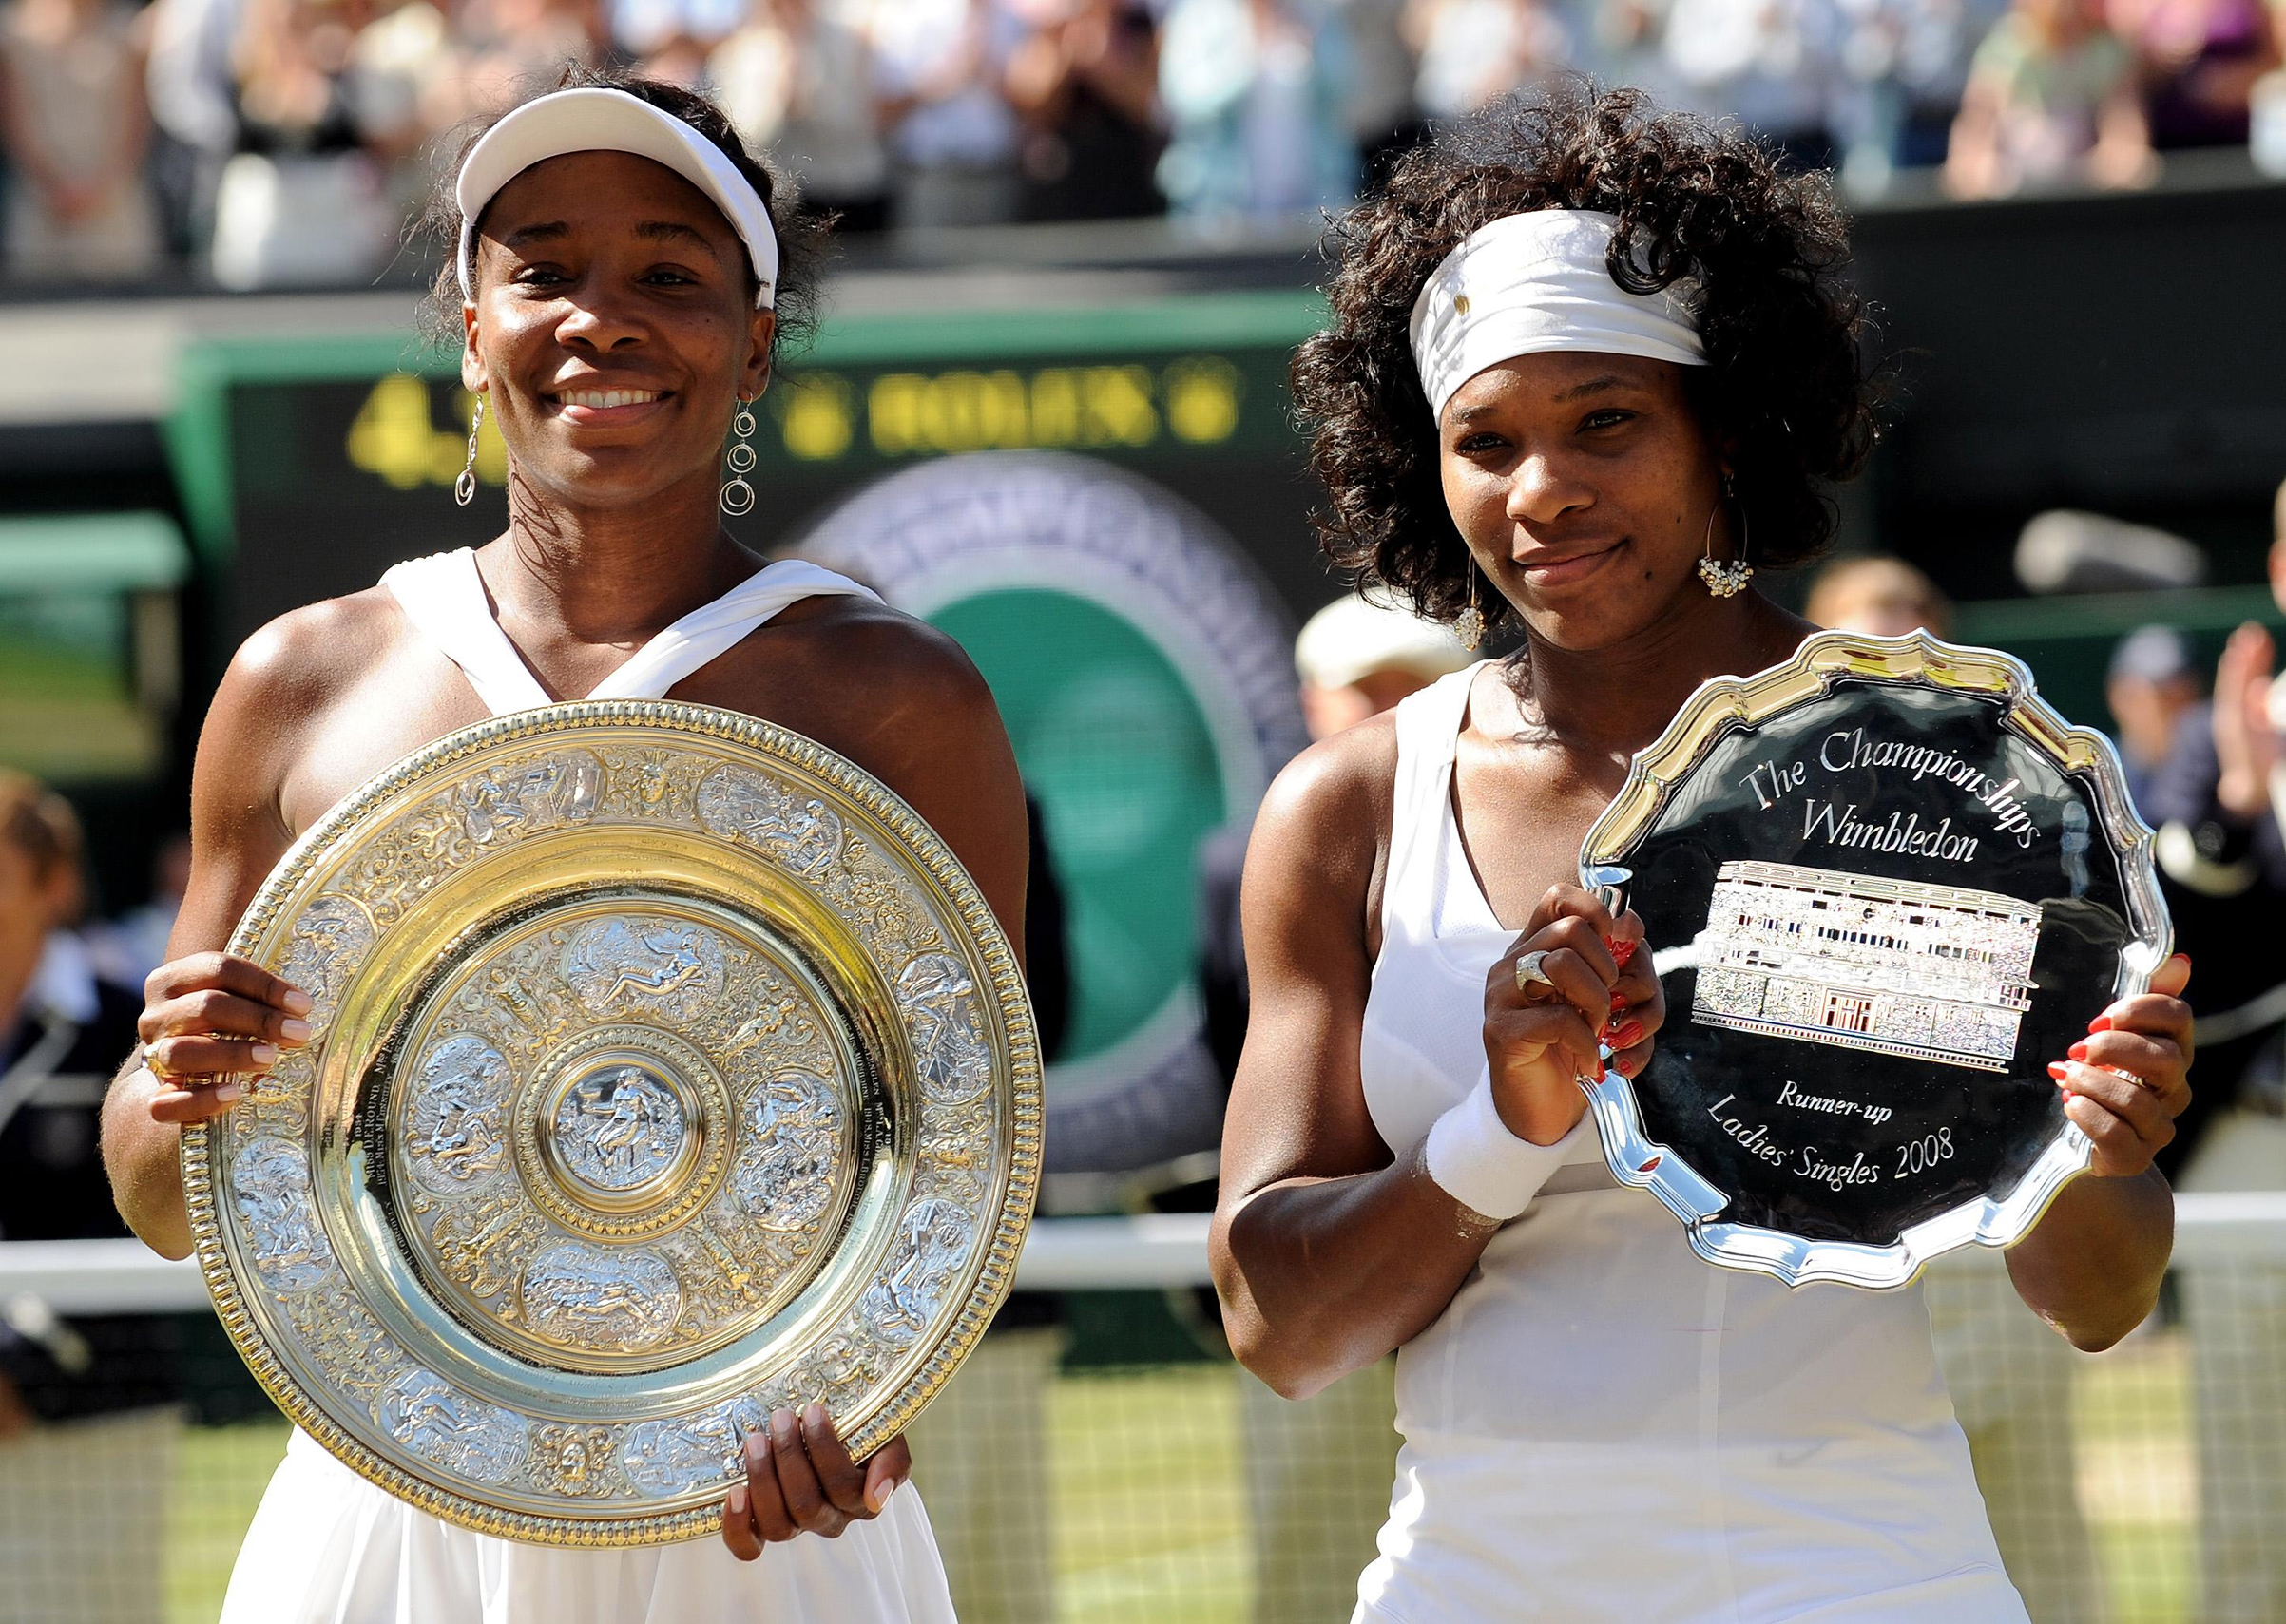 USA's Venus Williams and USA's Serena Williams with their trophies following their Women's Final match during the Wimbledon Championships 2008 at the All England Tennis Club in Wimbledon.